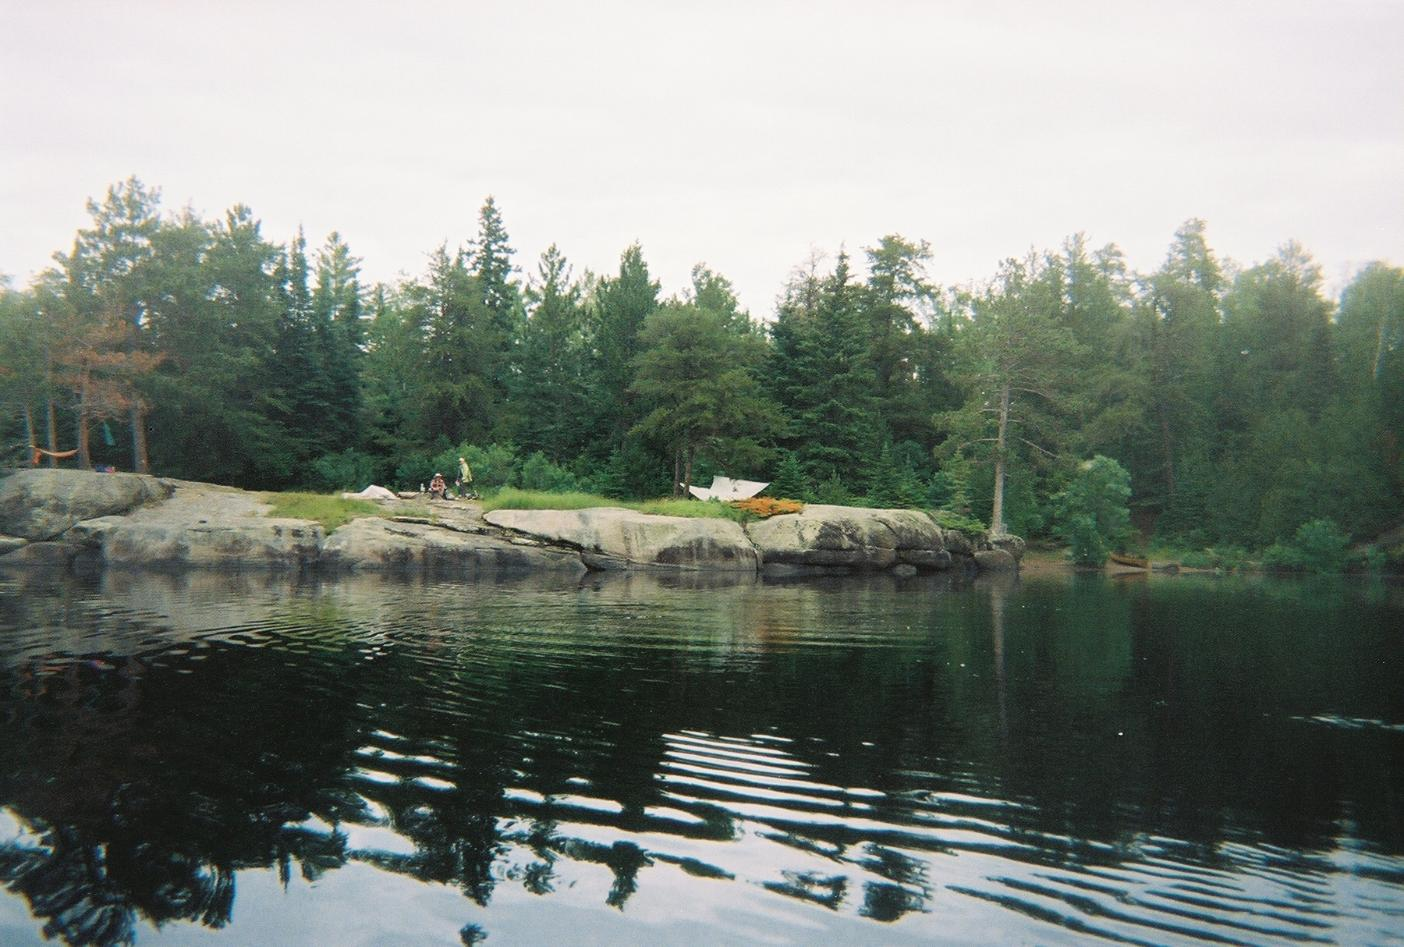 Bwca Fishing Lake Insula Boundary Waters Fishing Forum